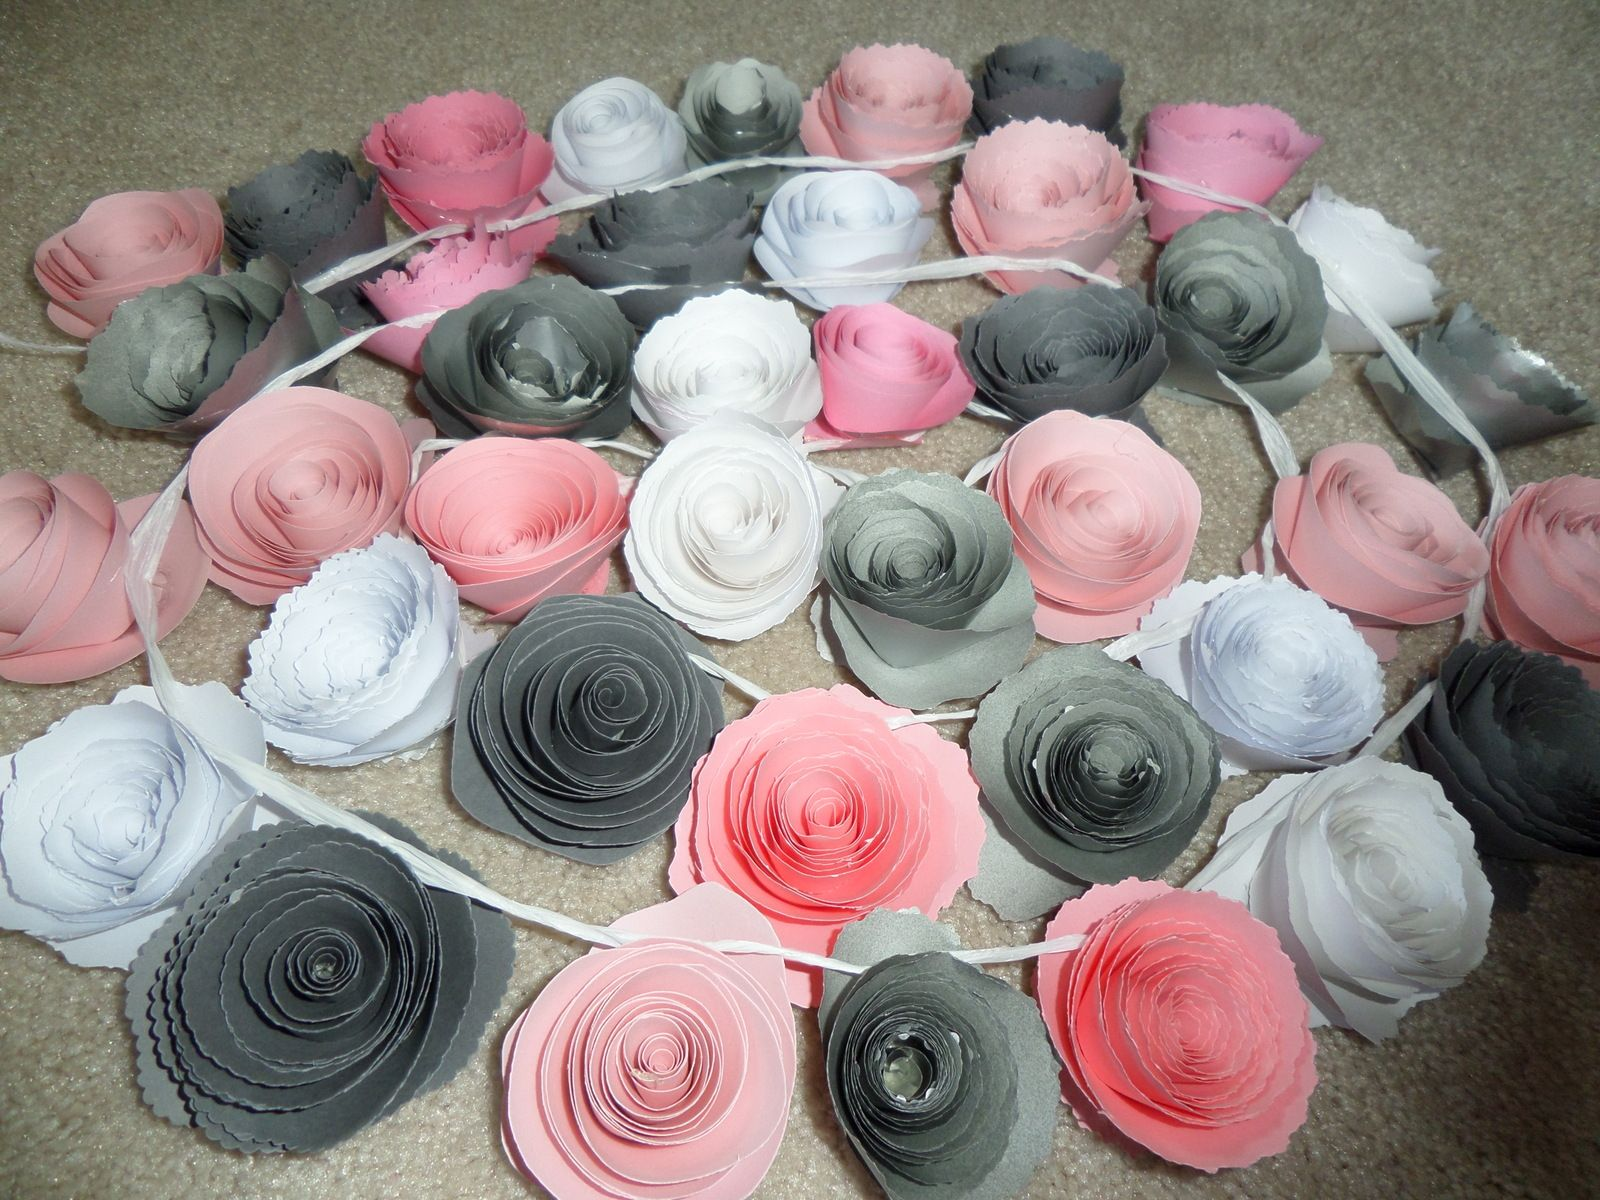 Grey Pink white Rolled Paper Flowers Spiral Garland 7' /$49 https://www.etsy.com/listing/228803883/fancy-rolled-paper-flower-garland-rolled?ref=shop_home_active_7